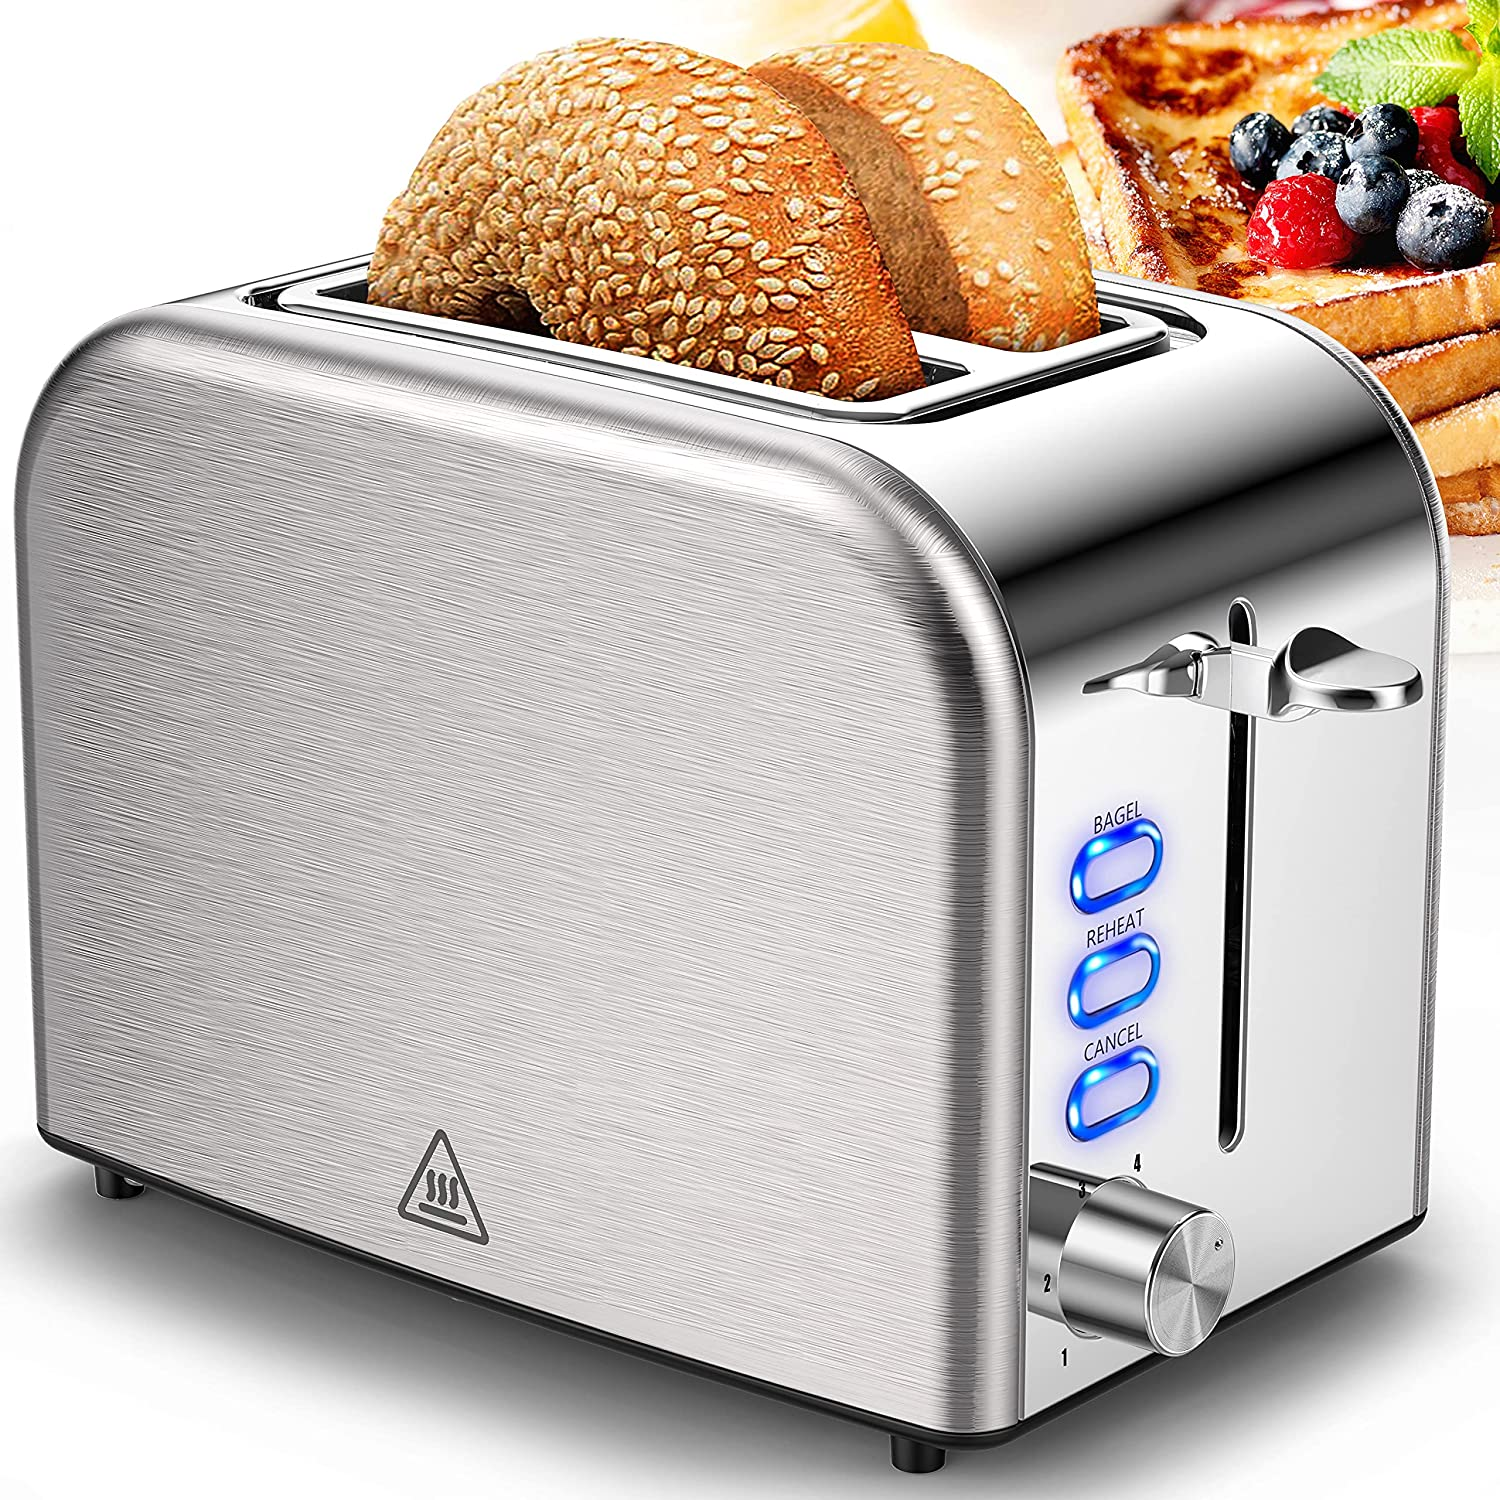 Toaster 2 Slice Toasters Stainless Steel 2 Slice Toaster Best Rated Prime Wide Slot with 6 Bread Shade Settings, Bagel, Reheat, Cancel Function, Removable Crumb Tray